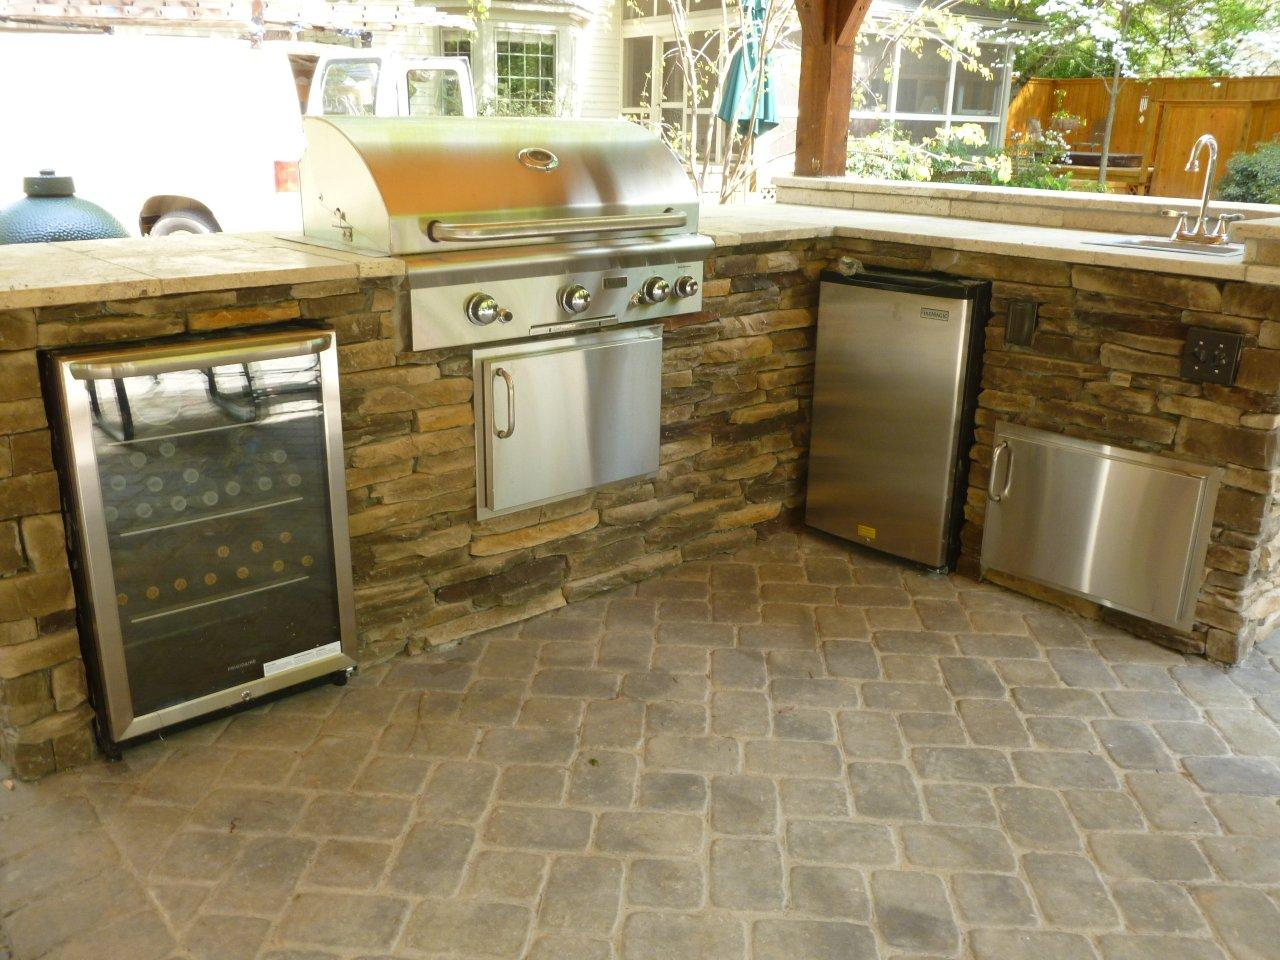 outdoor-kitchen-with-wine-refrigerator-grill-and-travertine-counter-top - Copy